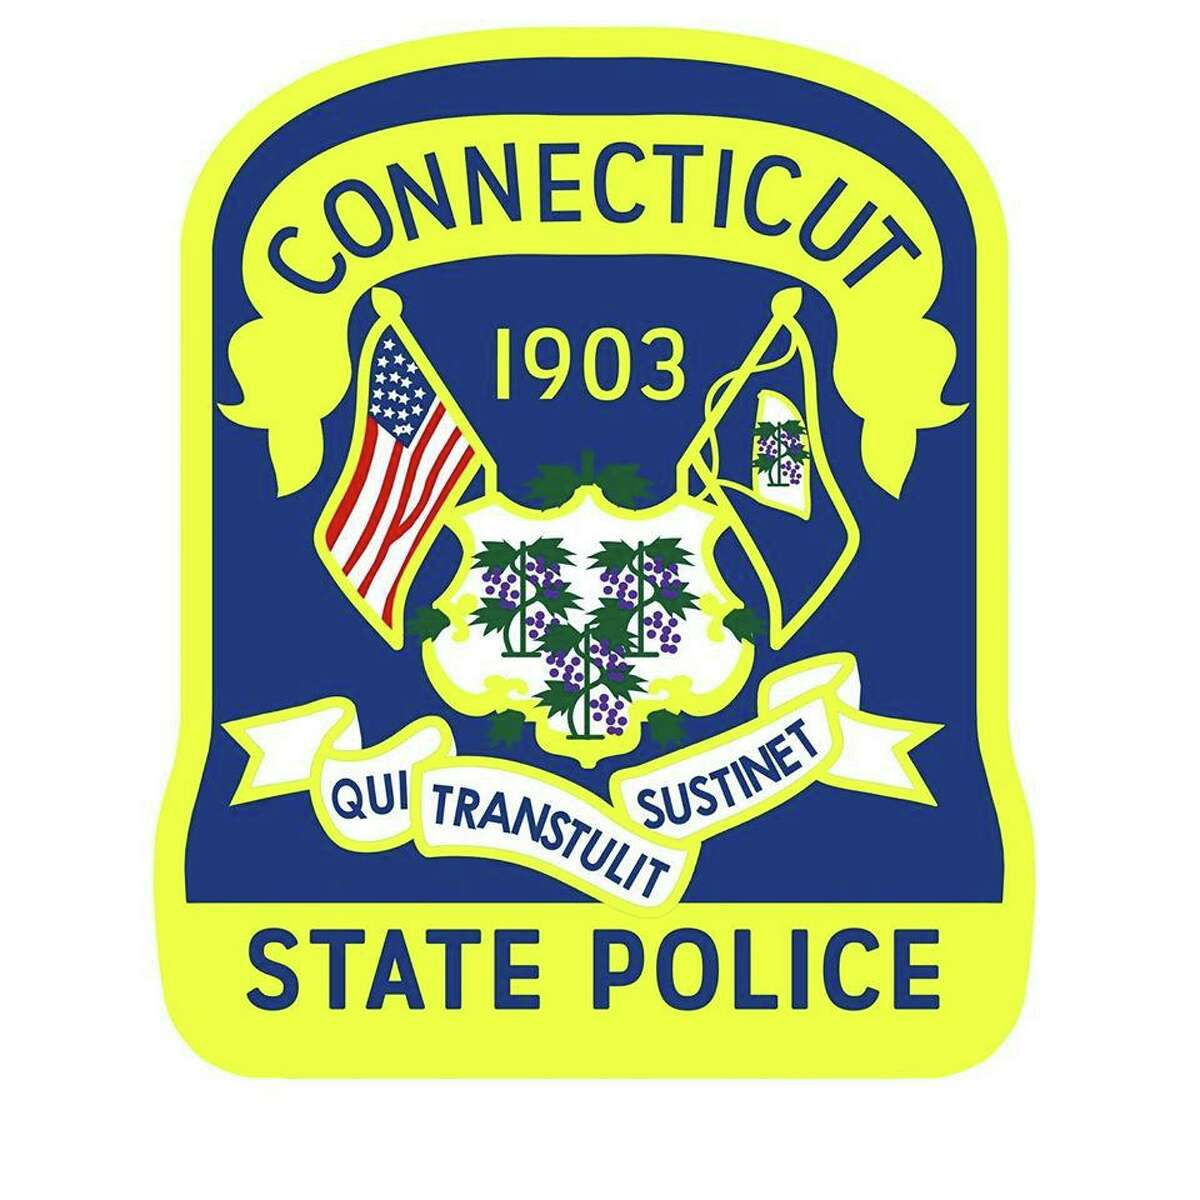 A 43-year-old Connecticut man was arrested Wednesday on eleven charges of failure to appear in court and one count of violation of a protective order. State Police said Michael Gramegna was arrested days after he removed his court-ordered ankle monitoring device and mailed it back to the Office of Probation.